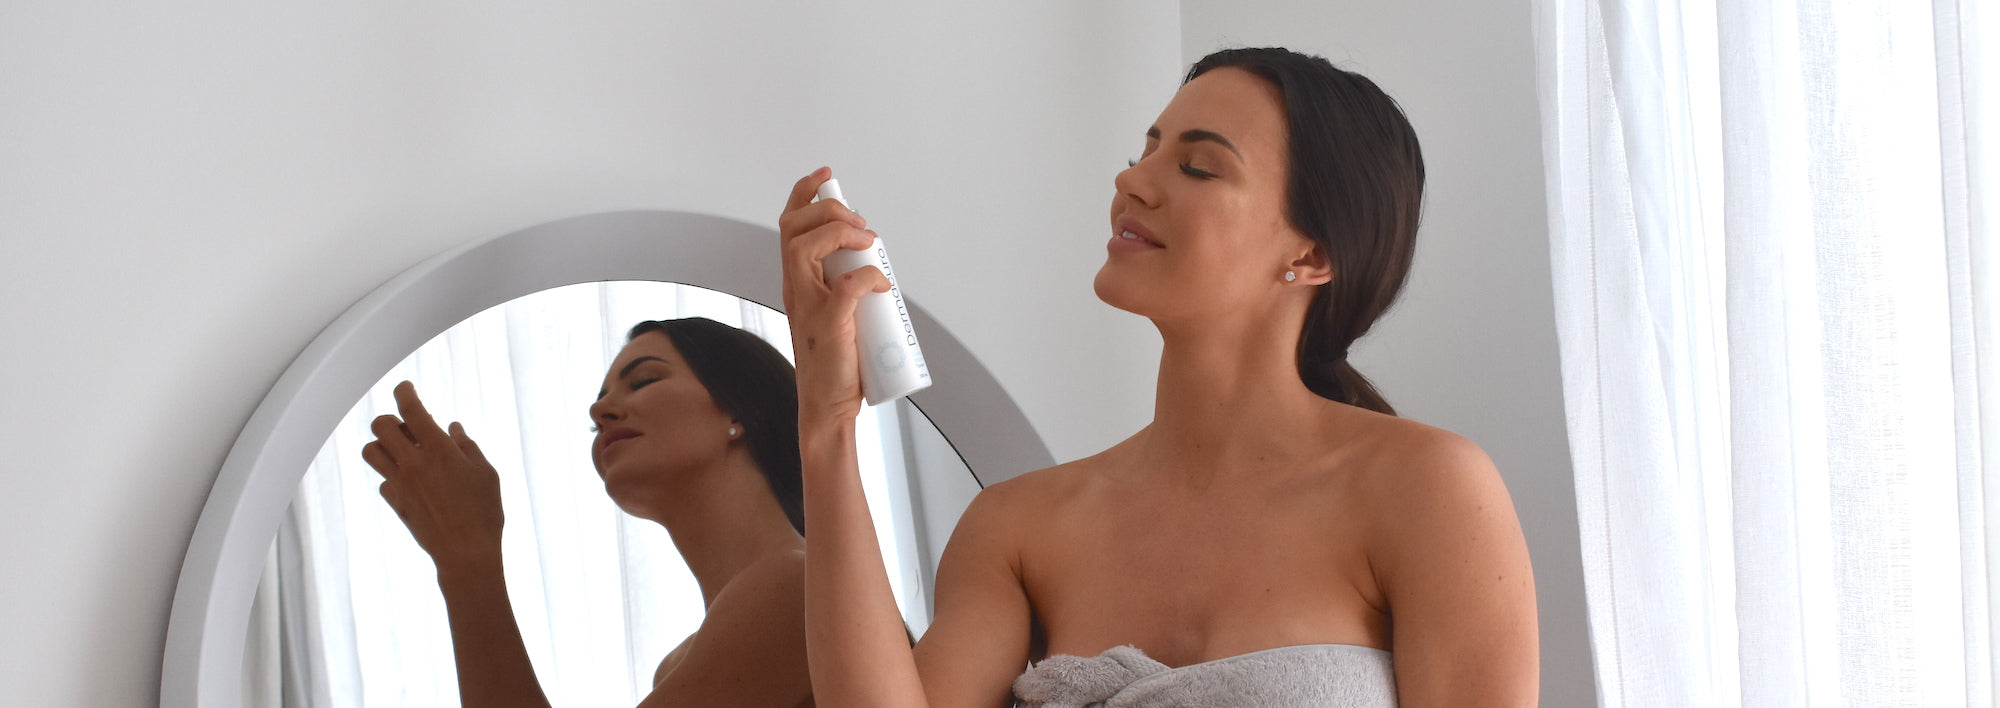 Skincare wellness hero products, best skincare for anti-aging, How to get glowing skin